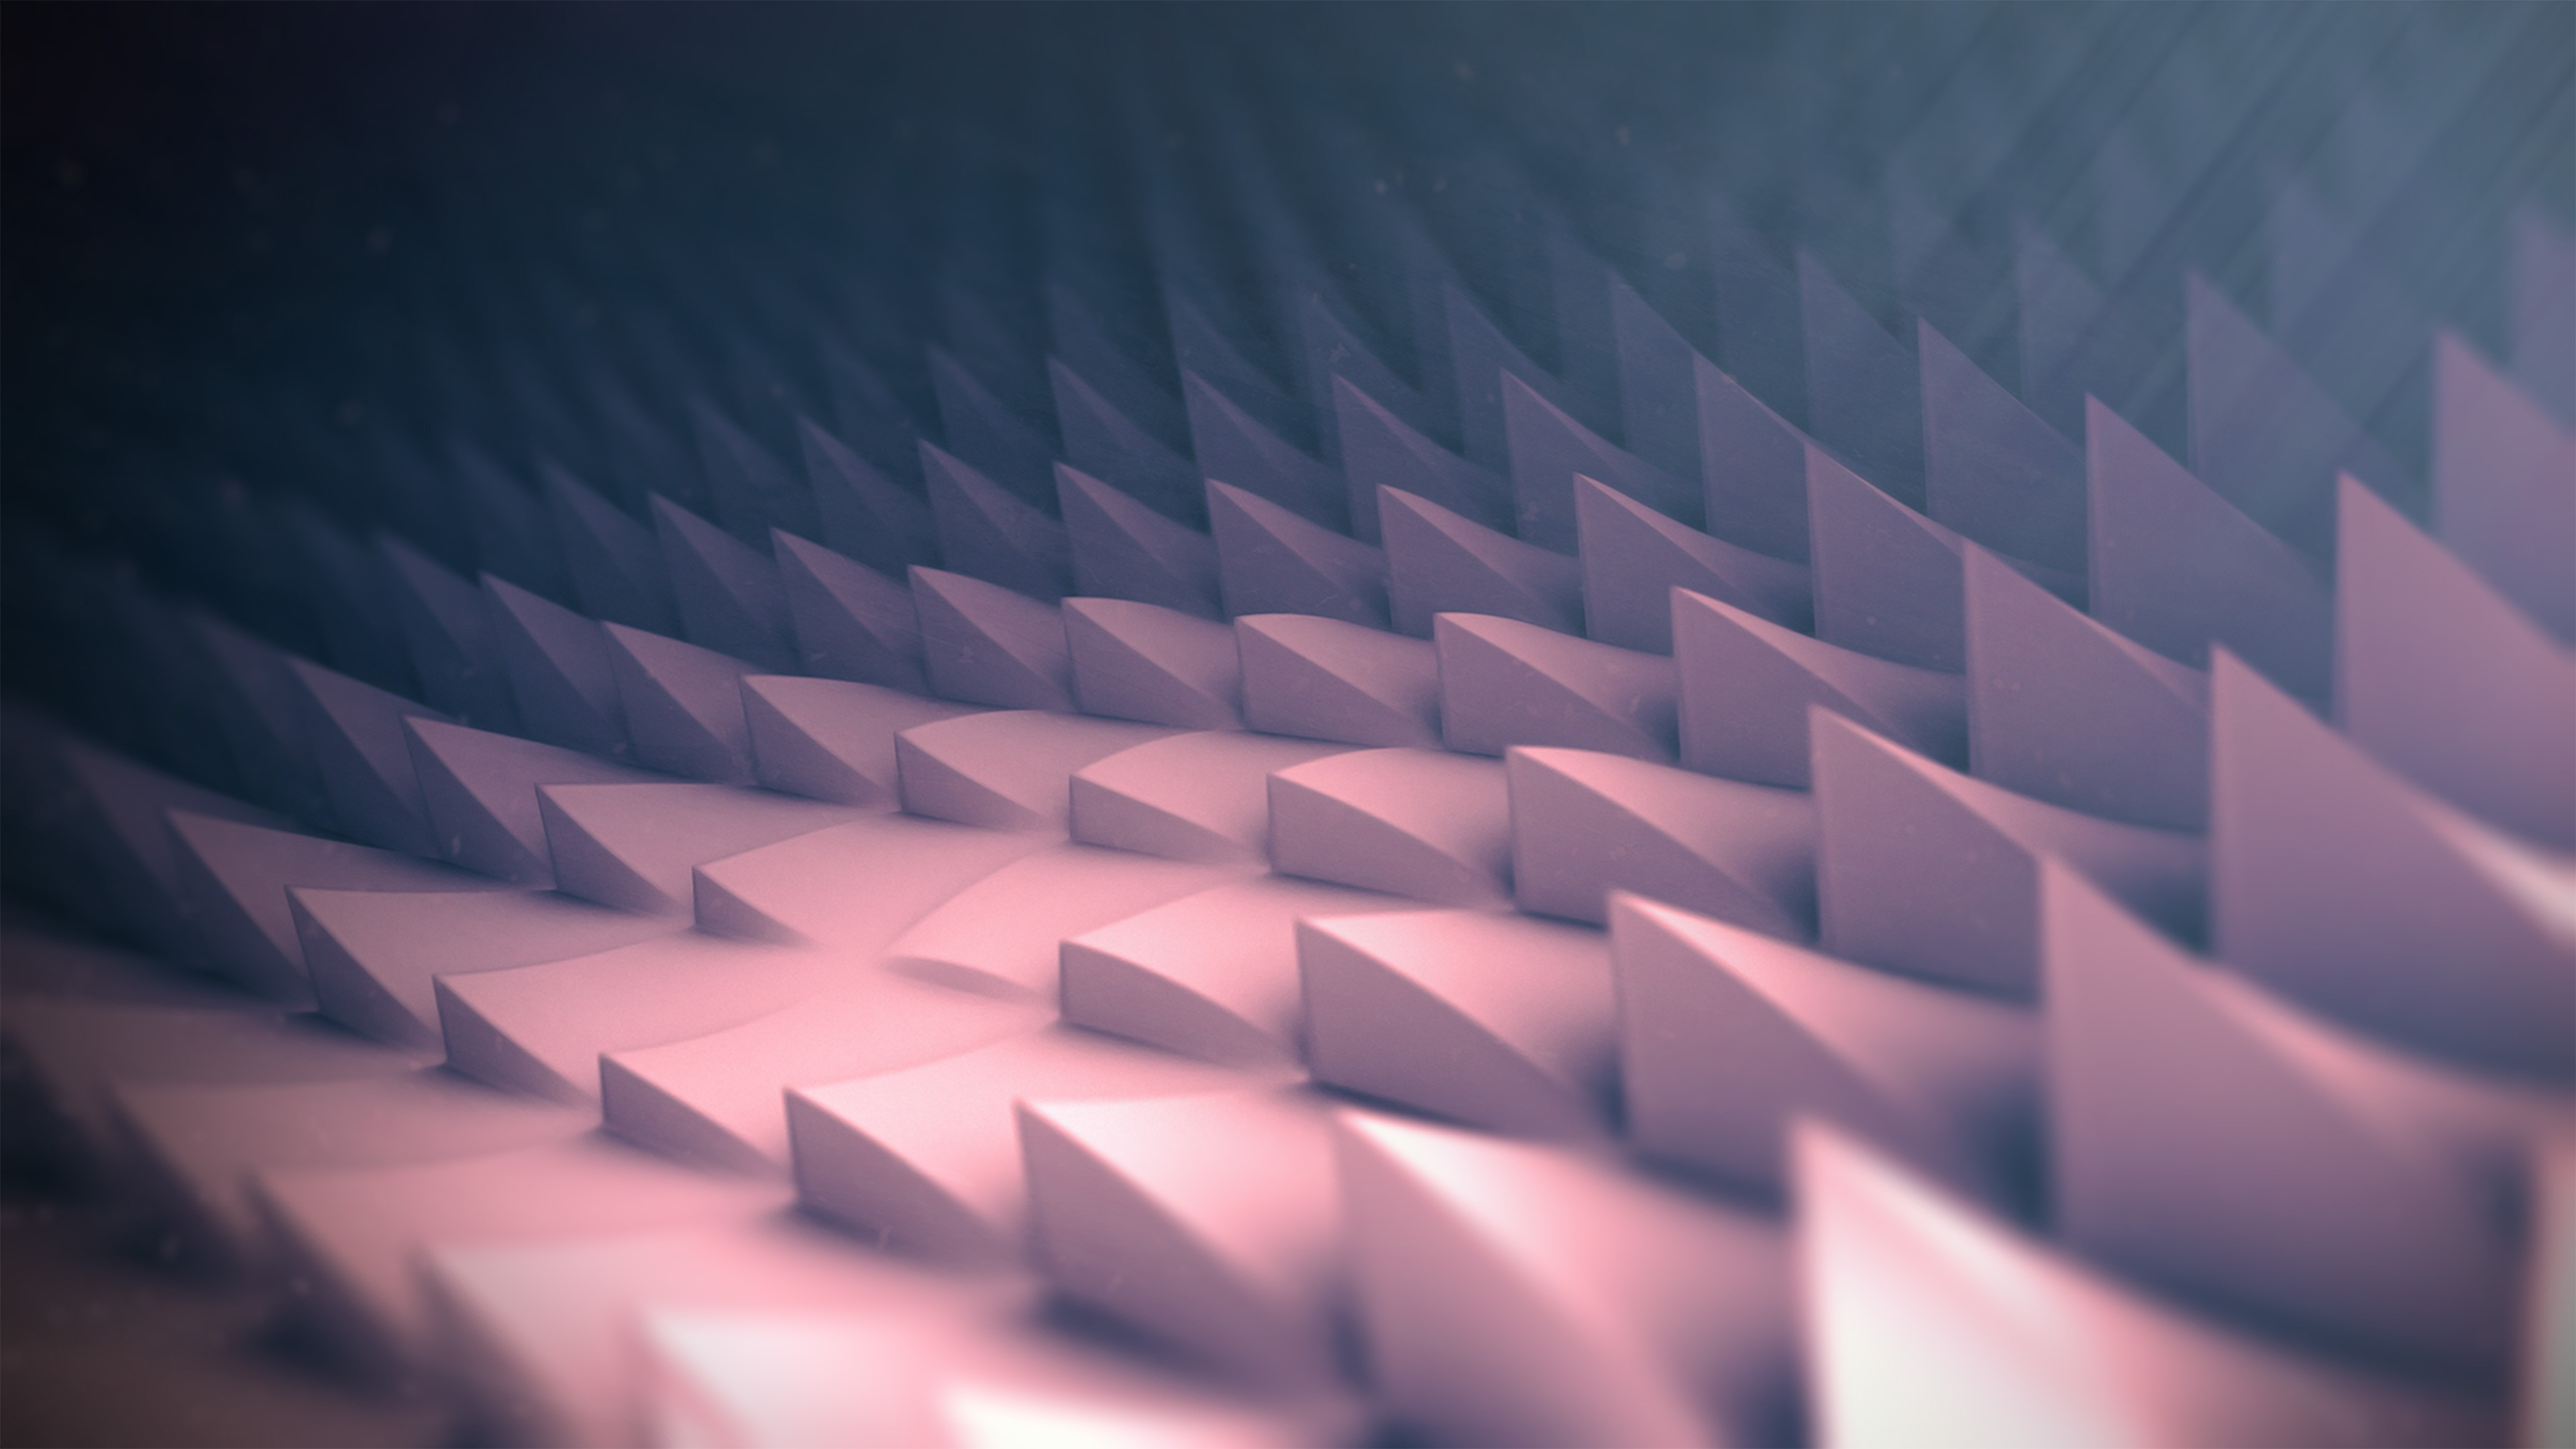 Wallpaper Polygons 3D 4k 5k Iphone Android